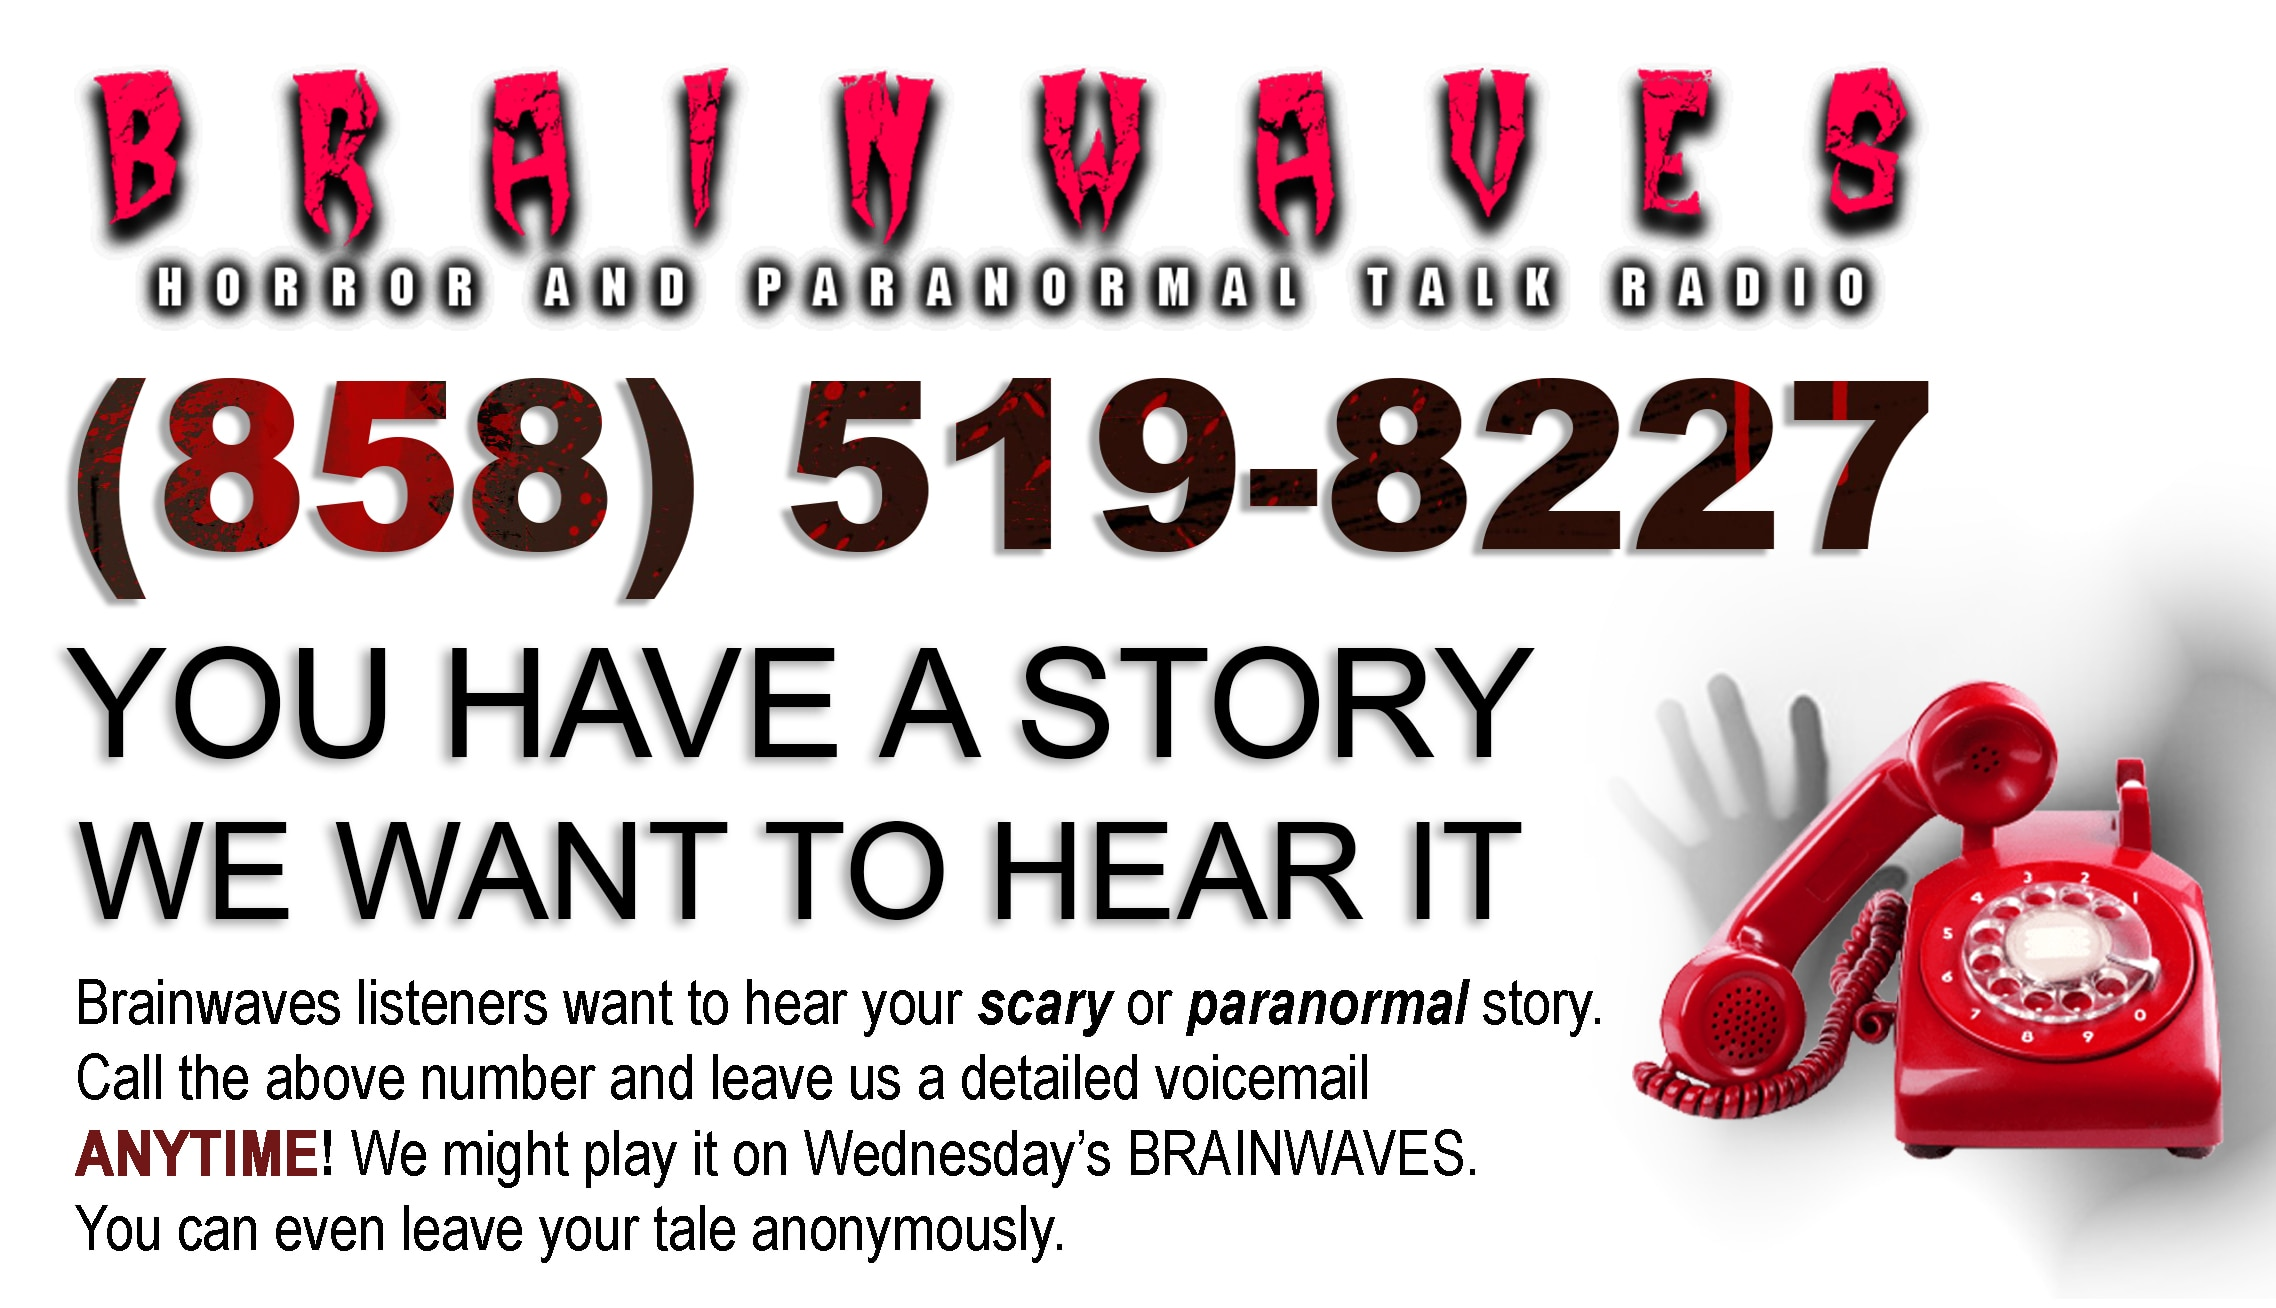 CallBrainwaves v02 - #Brainwaves Episode 95: Reindeer Manor Investigation and Greg Nicotero Talks CREEPSHOW - LISTEN NOW!